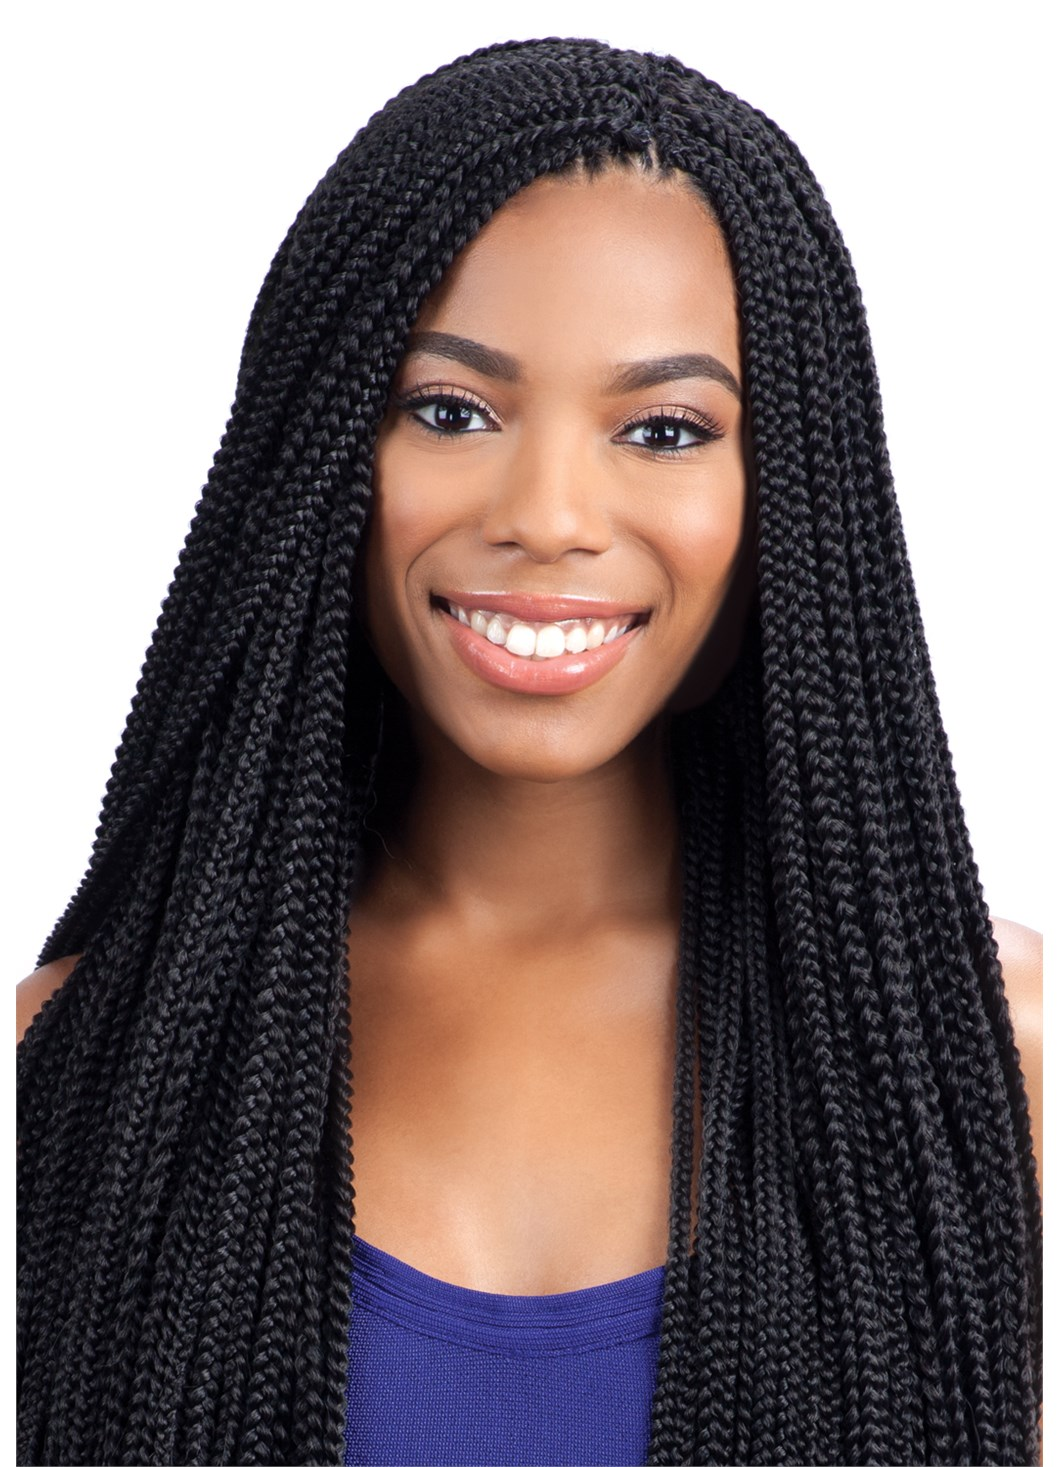 Freetress Crochet Box Braids : SMALL BOX BRAIDS - FREETRESS SYNTHETIC CROCHET BRAID HAIR PRE-LOOPED ...